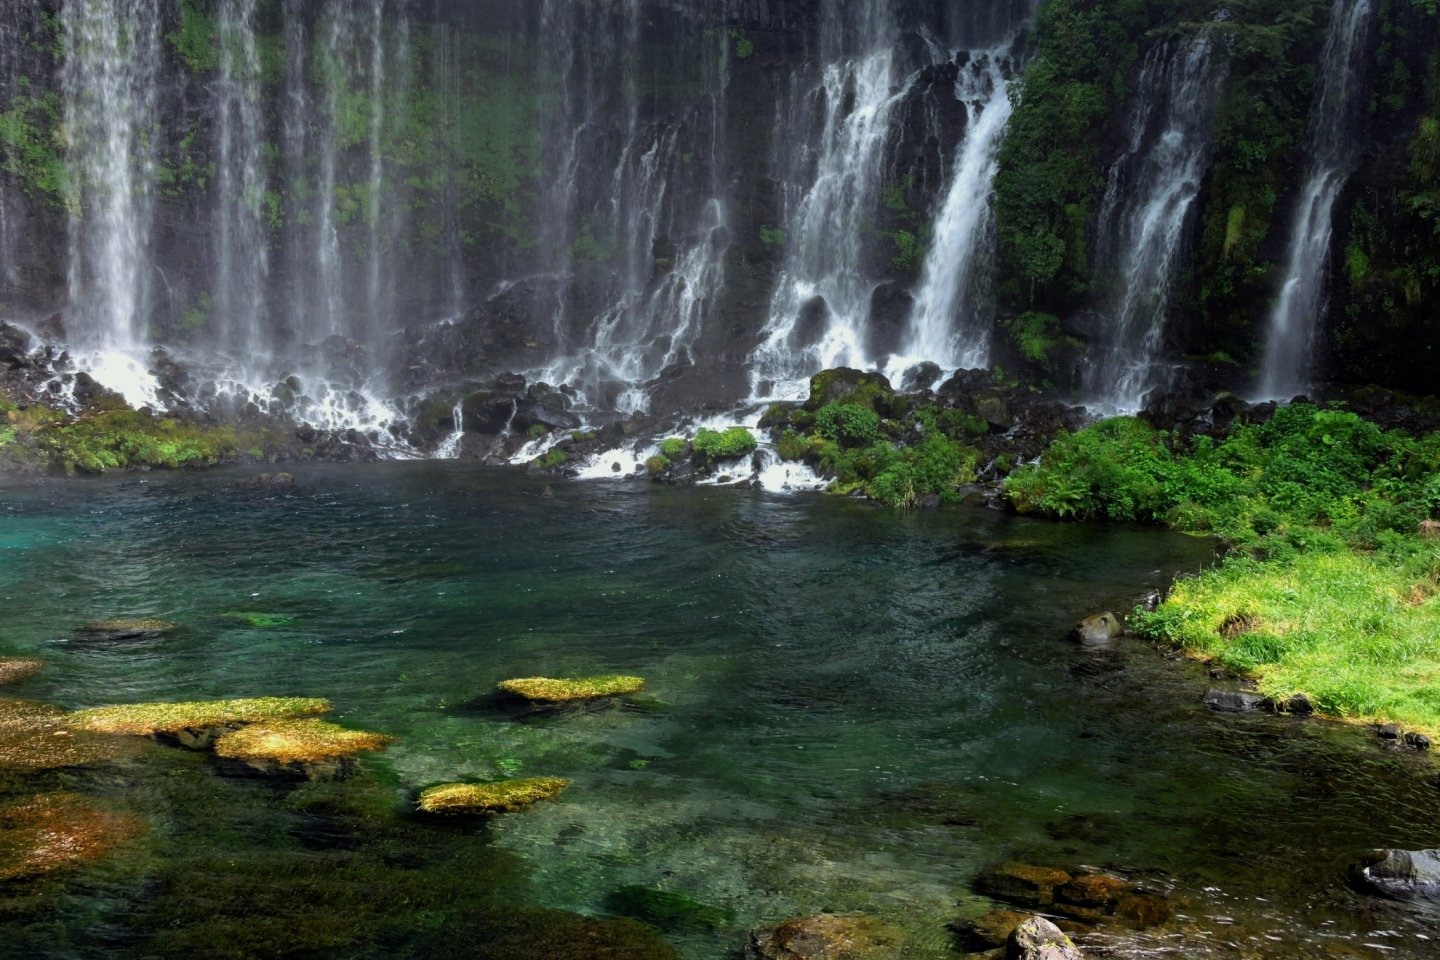 Shiraito Falls is the most beautiful waterfall I have ever seen